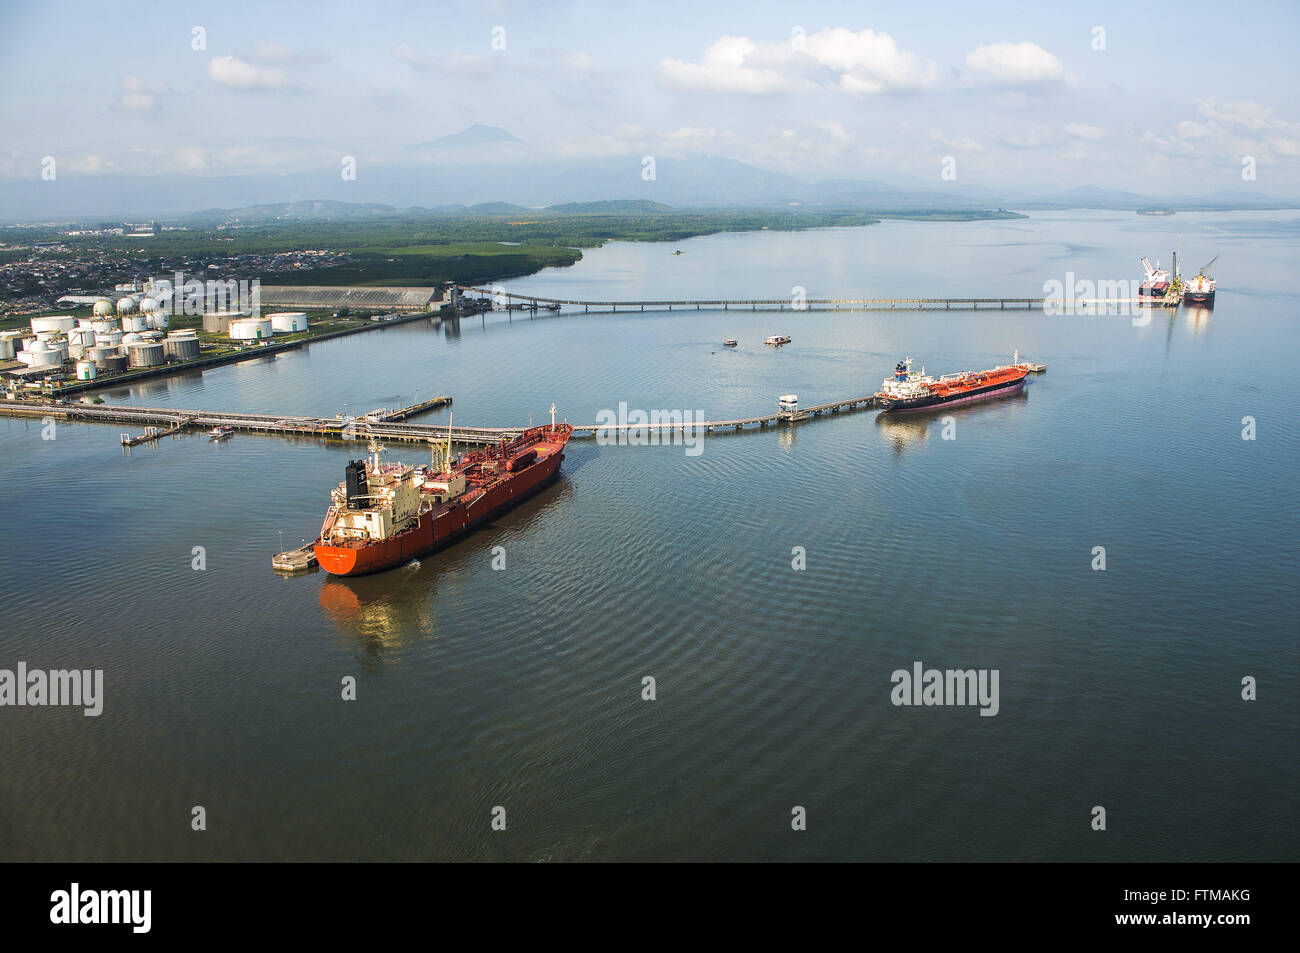 Aerial view of freighters moored at pier of fuels and fertilizers in the private area of the port - Stock Image